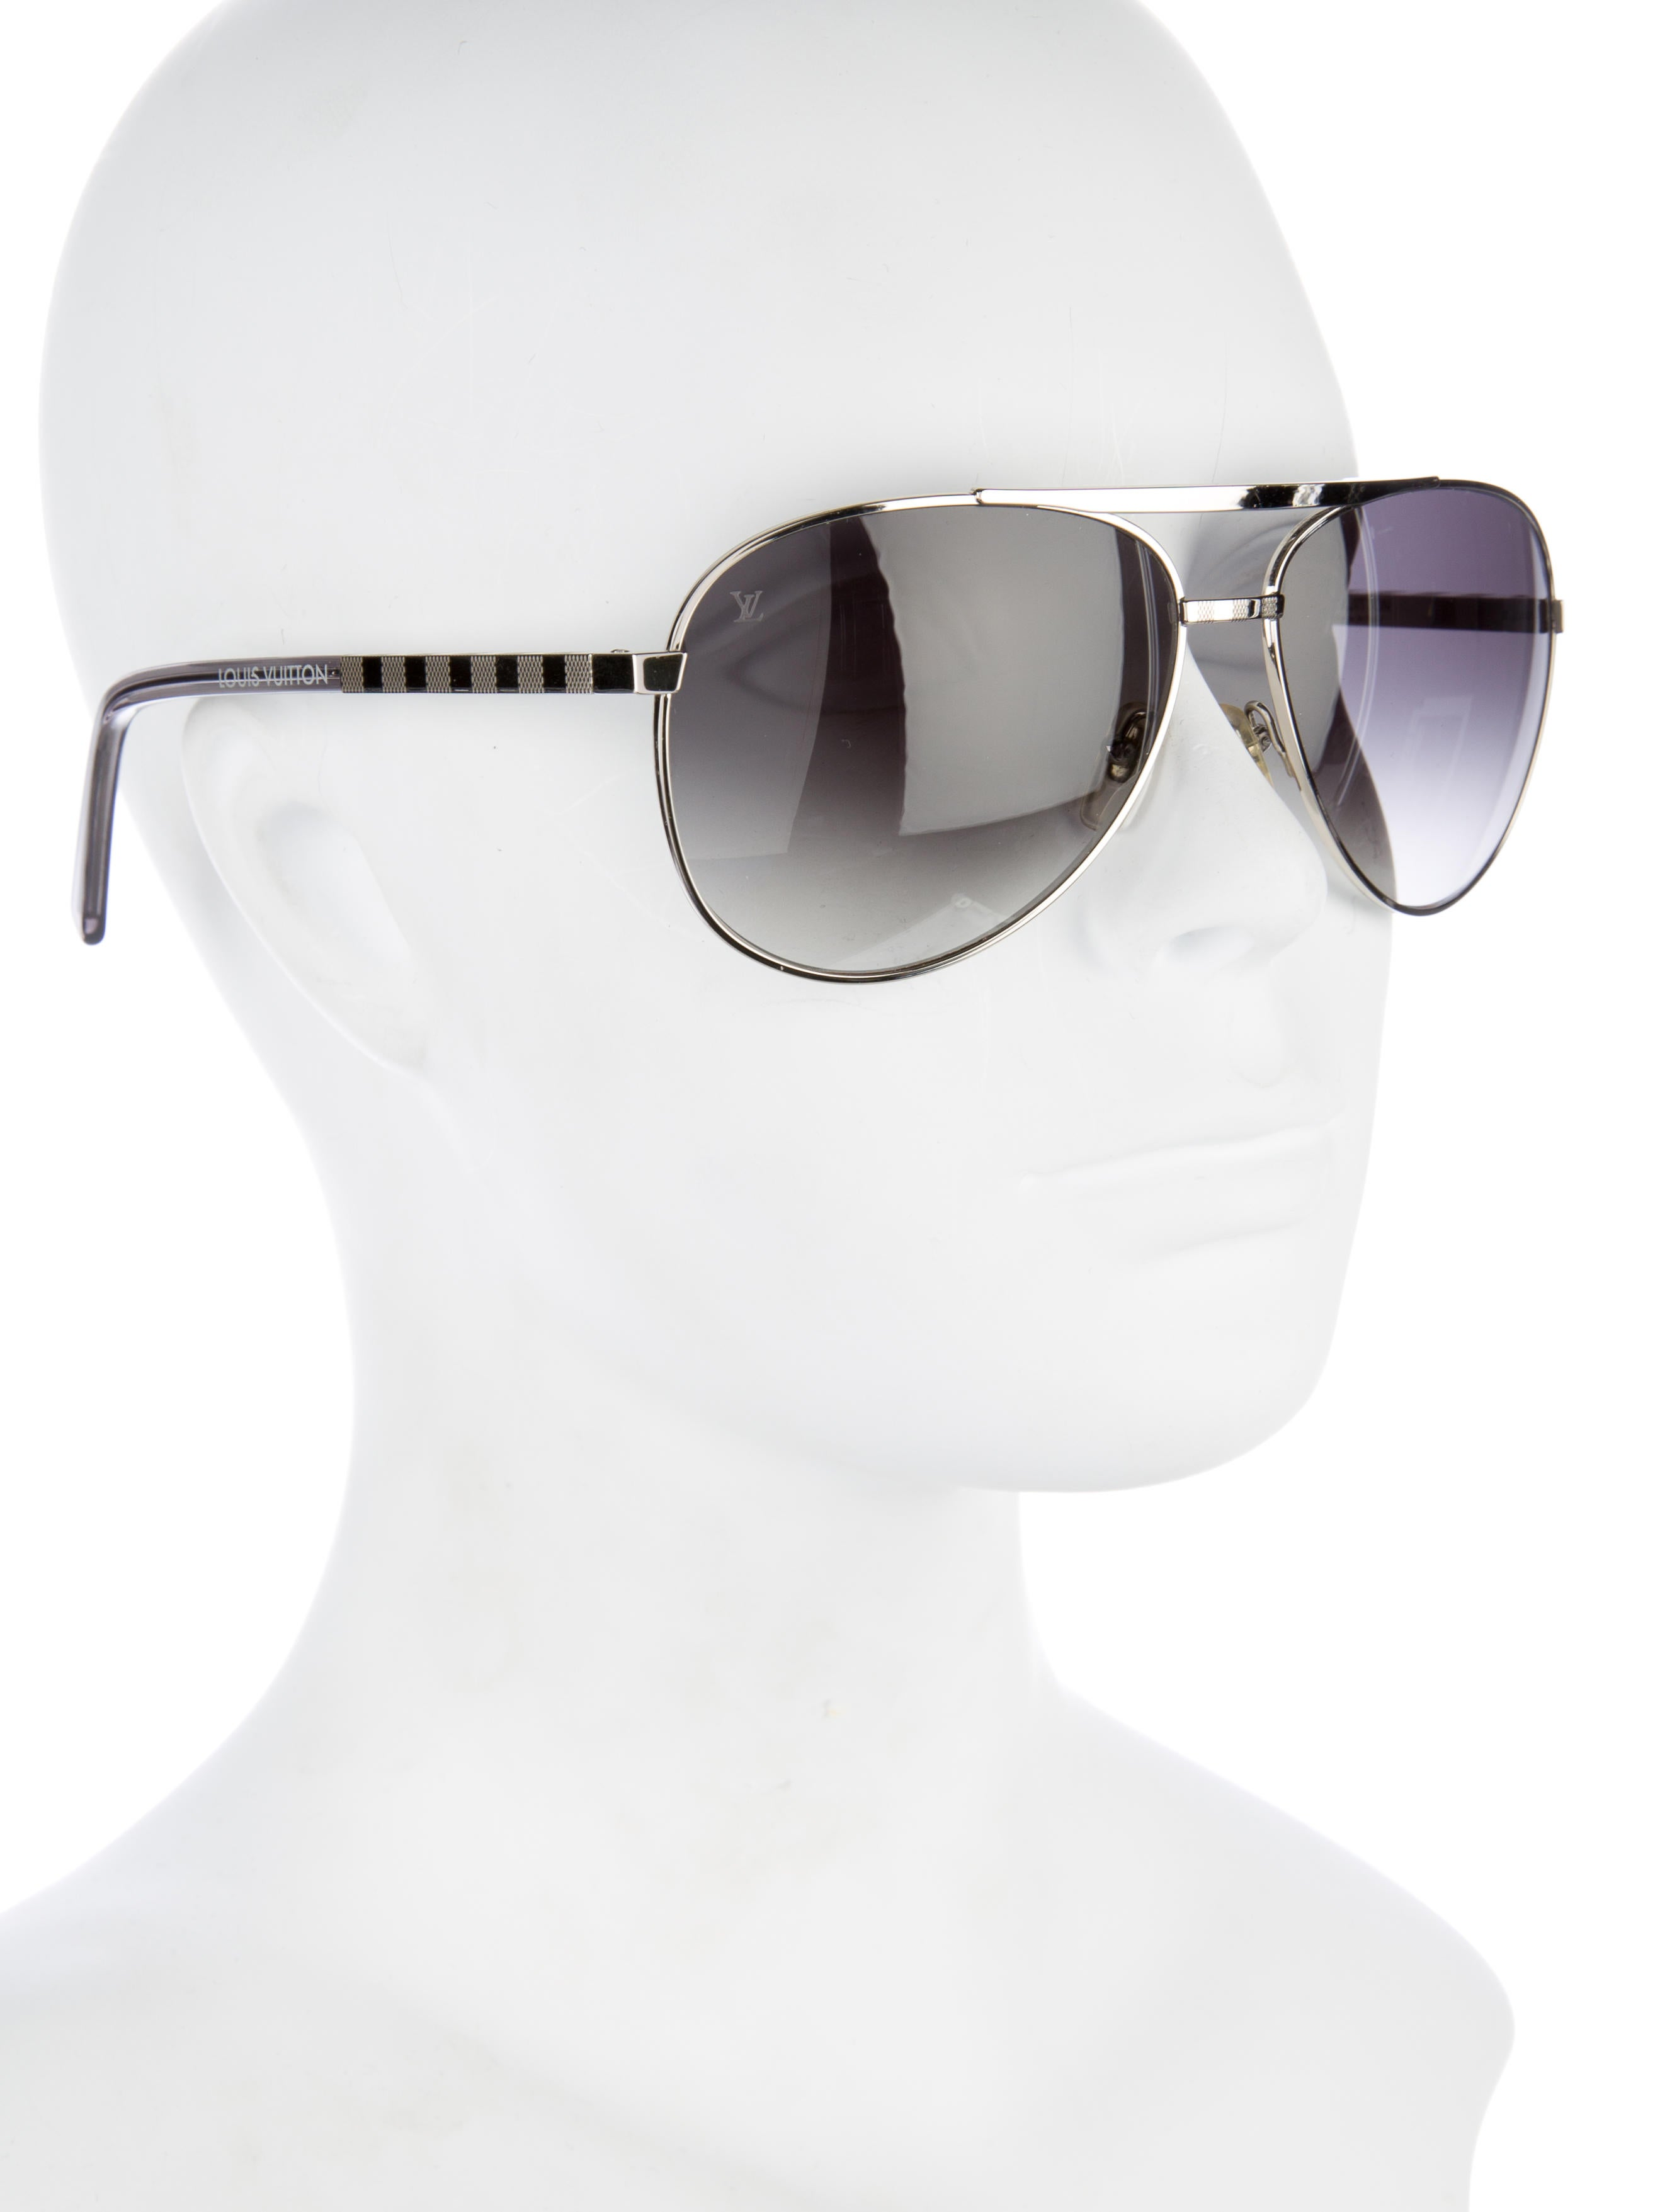 4b4d5429503c Sun Glasses Attitude Sms. Louis Vuitton Attitude Sunglasses - Accessories -  LOU35954